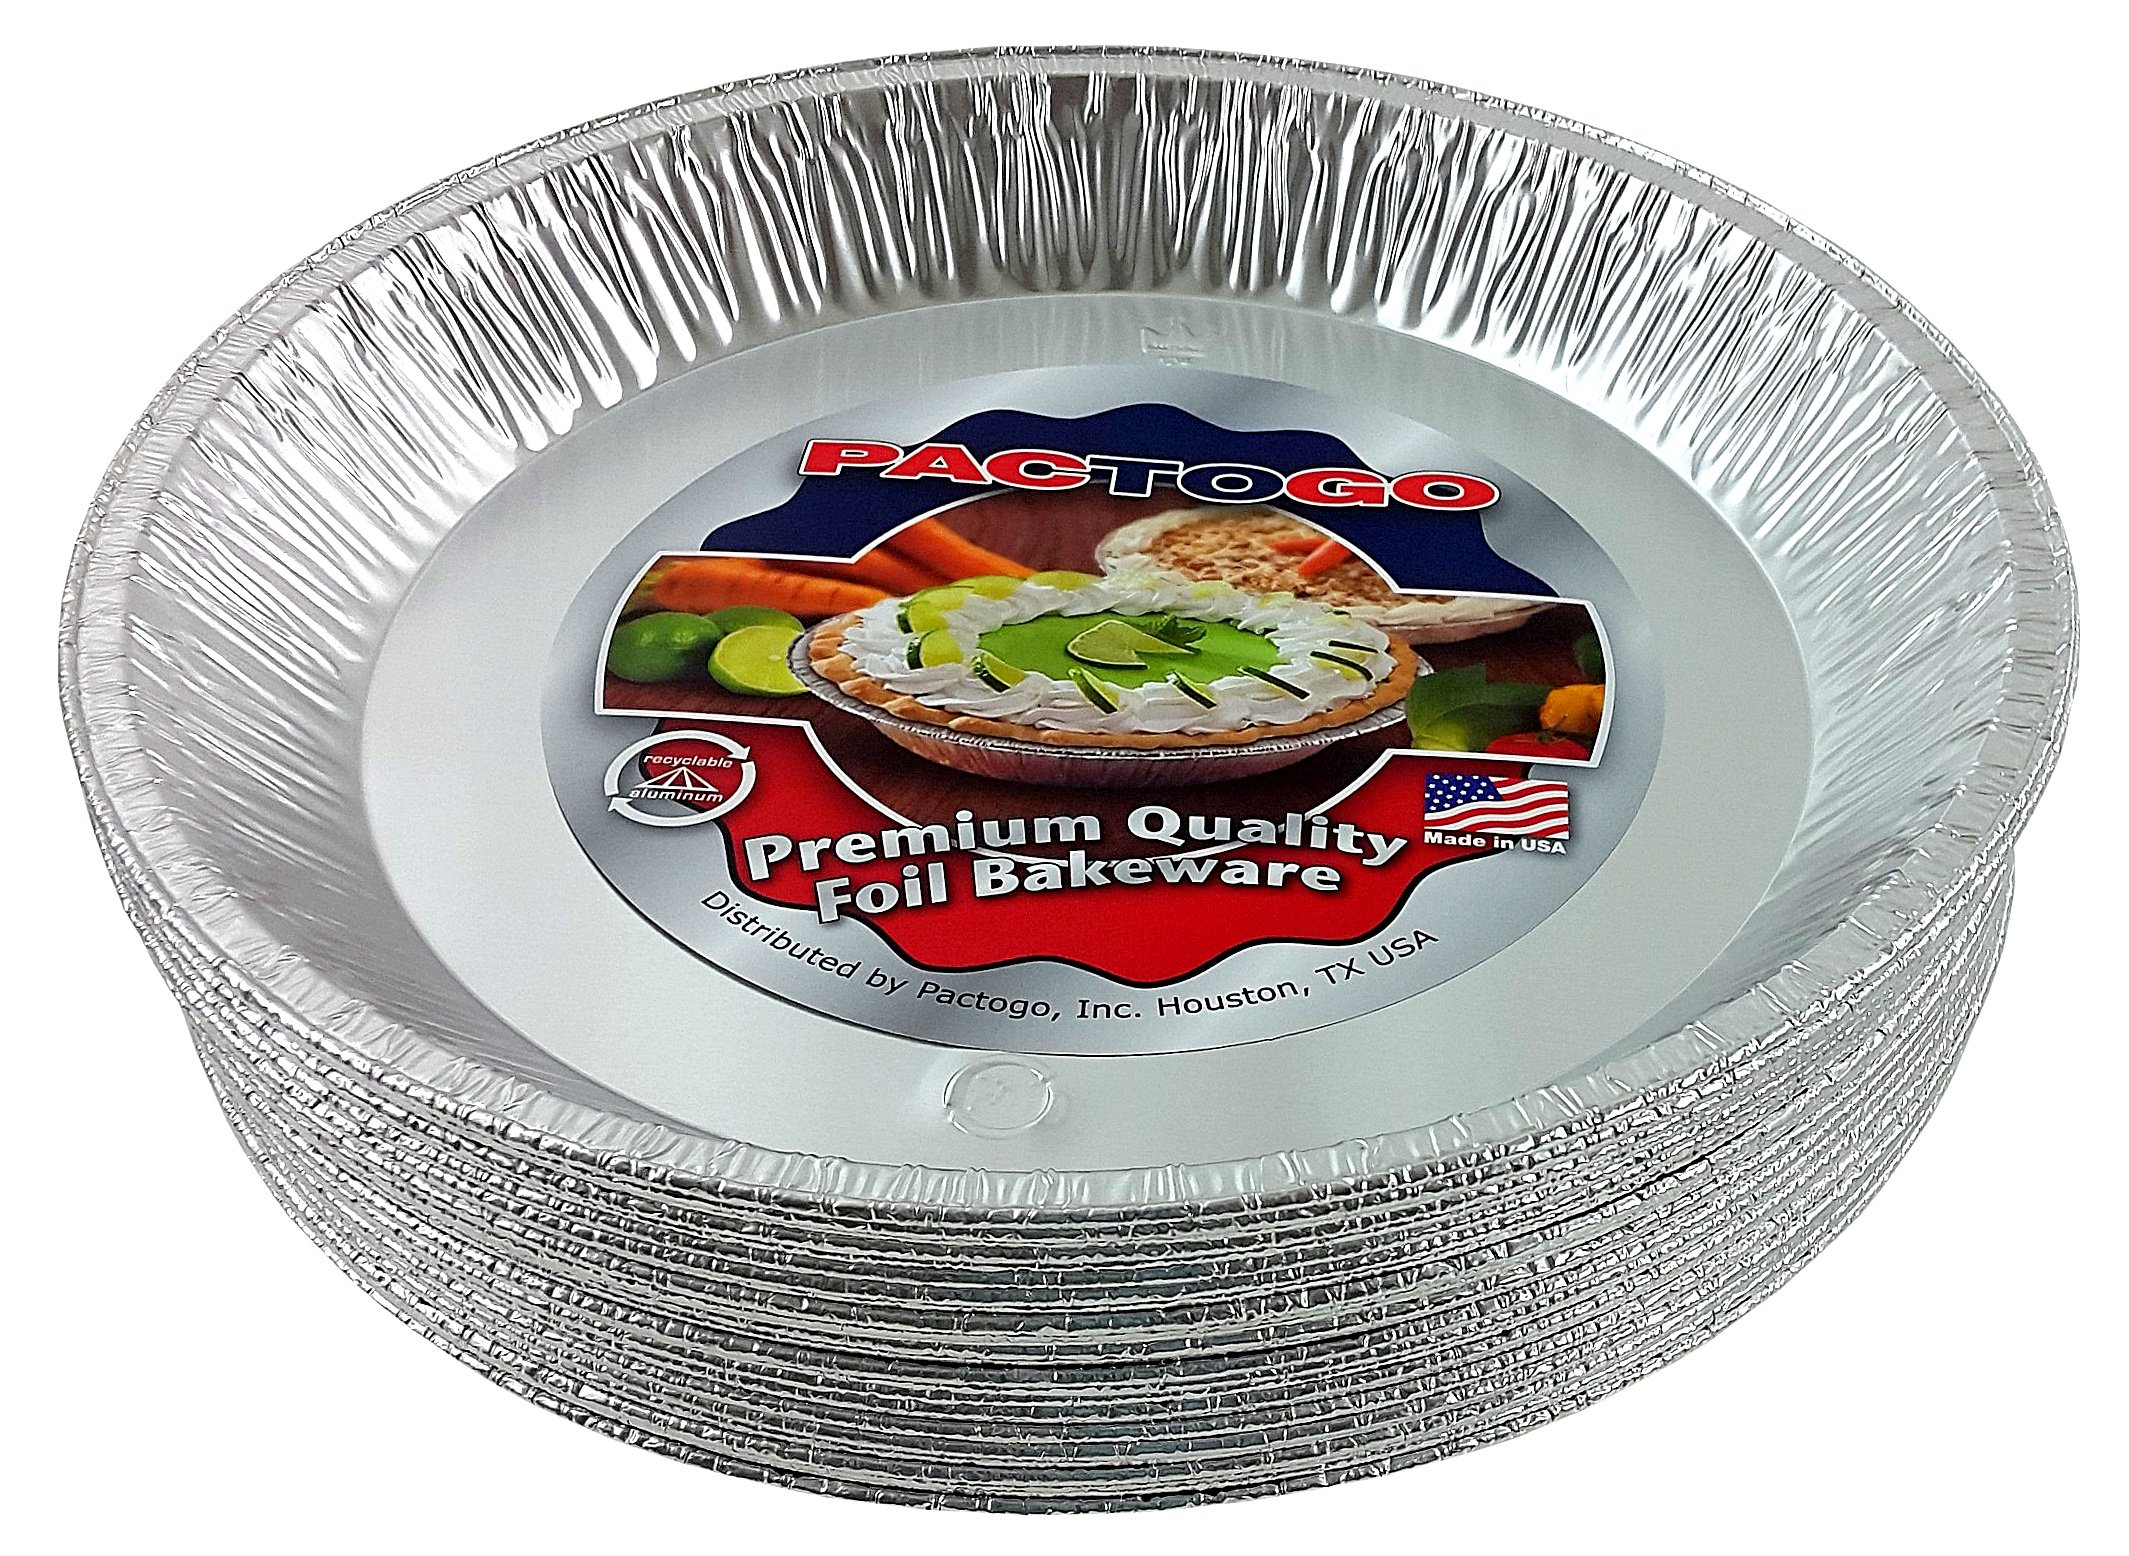 Pactogo 12'' Aluminum Foil Pie Pan Extra-Deep Disposable Tin Plates (Pack of 500) by PACTOGO (Image #6)